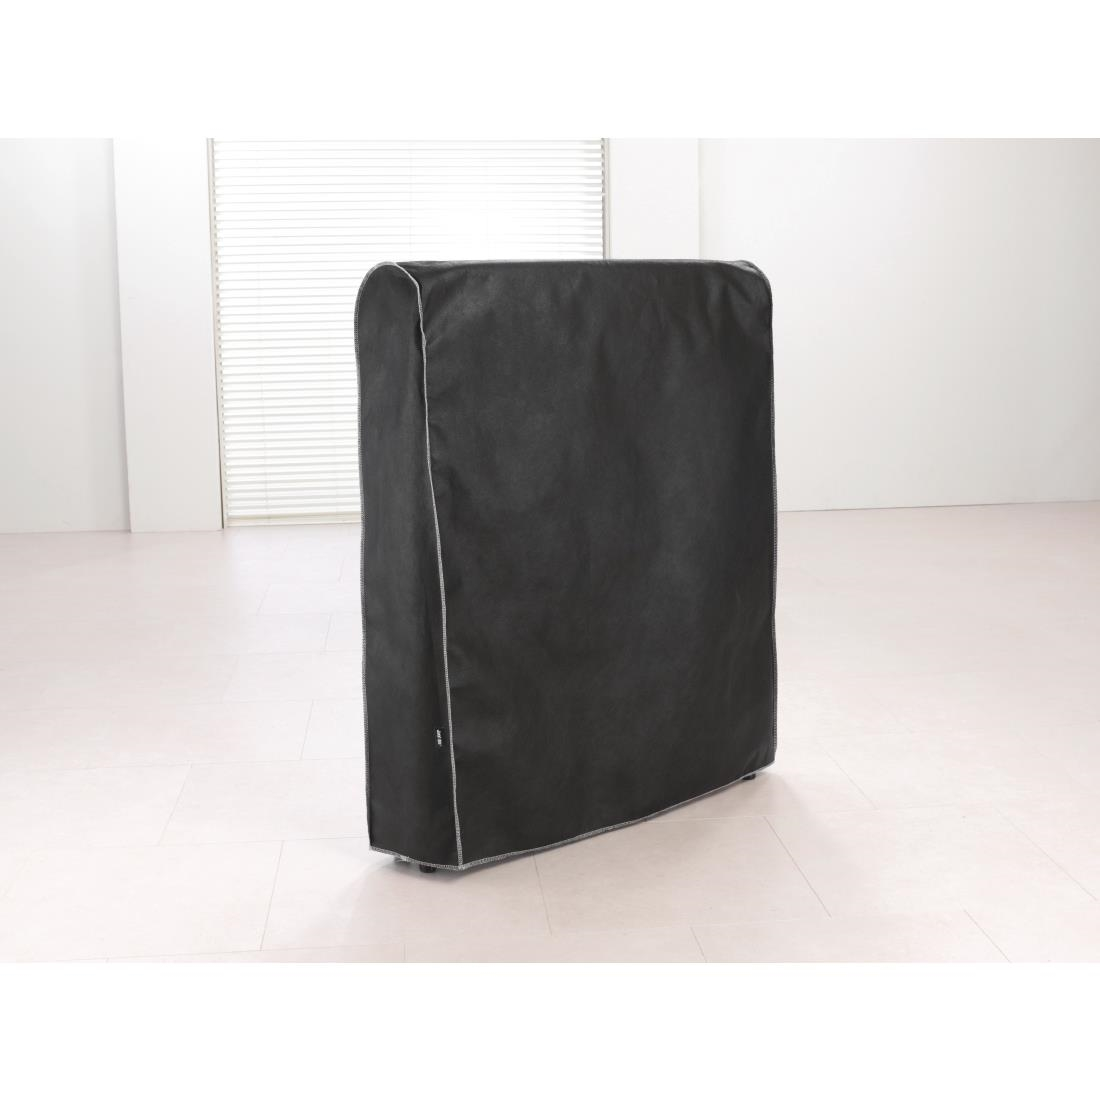 Image of Jay-Be Single Bed Storage Cover for GR370 and GR372